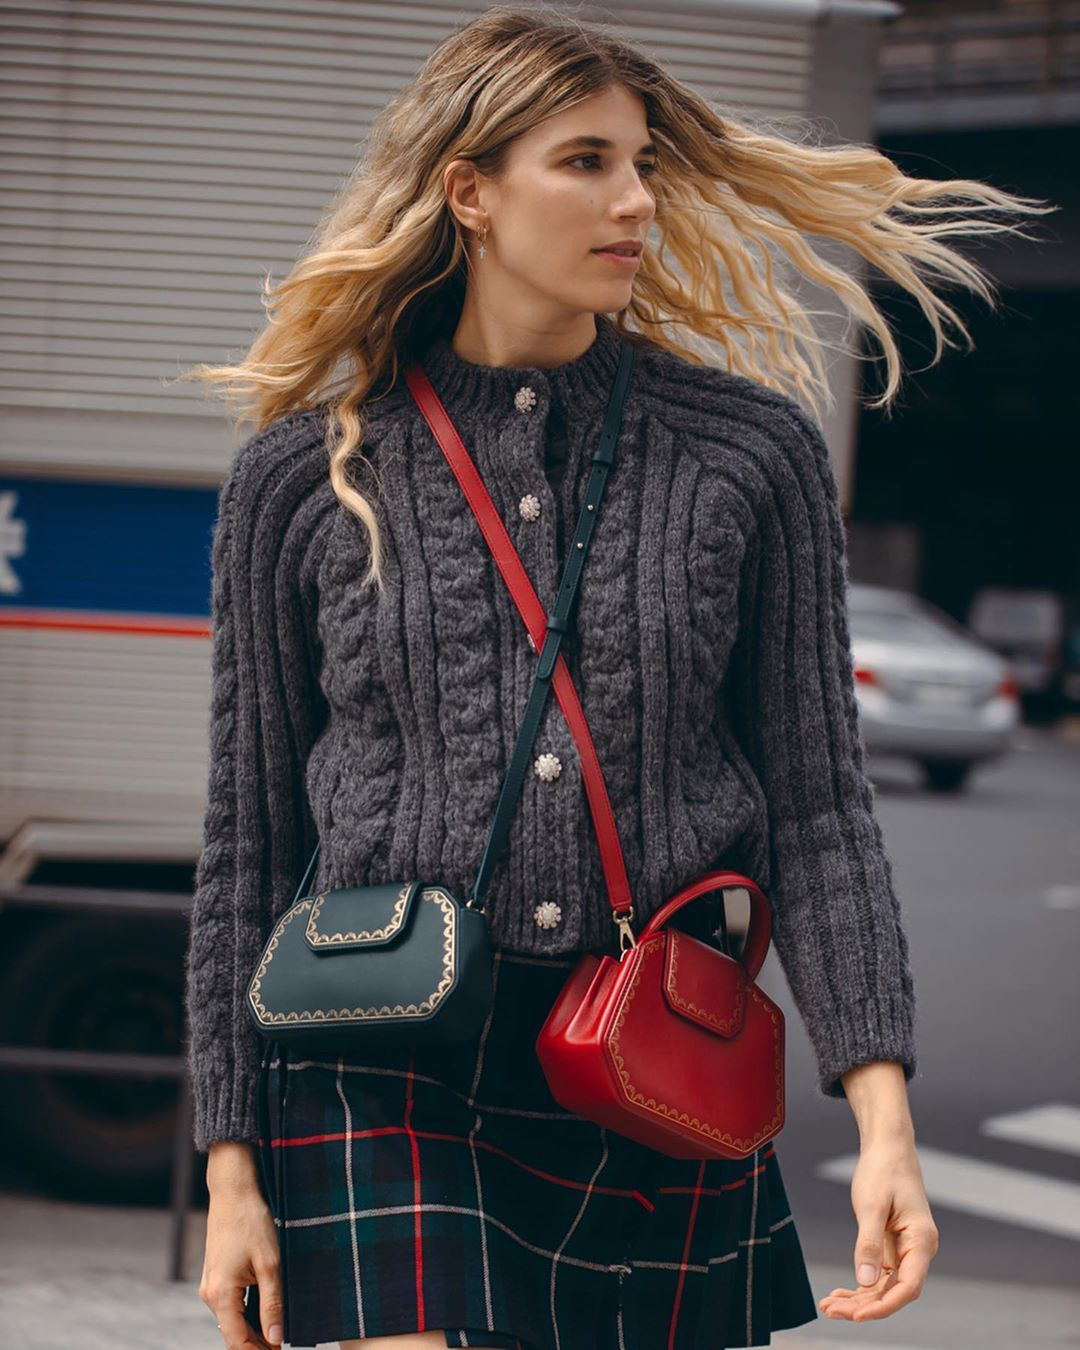 veronika-heilbunner-ganni-cable-knit-cropped-cardigan-fall-2019-outfit-instagram